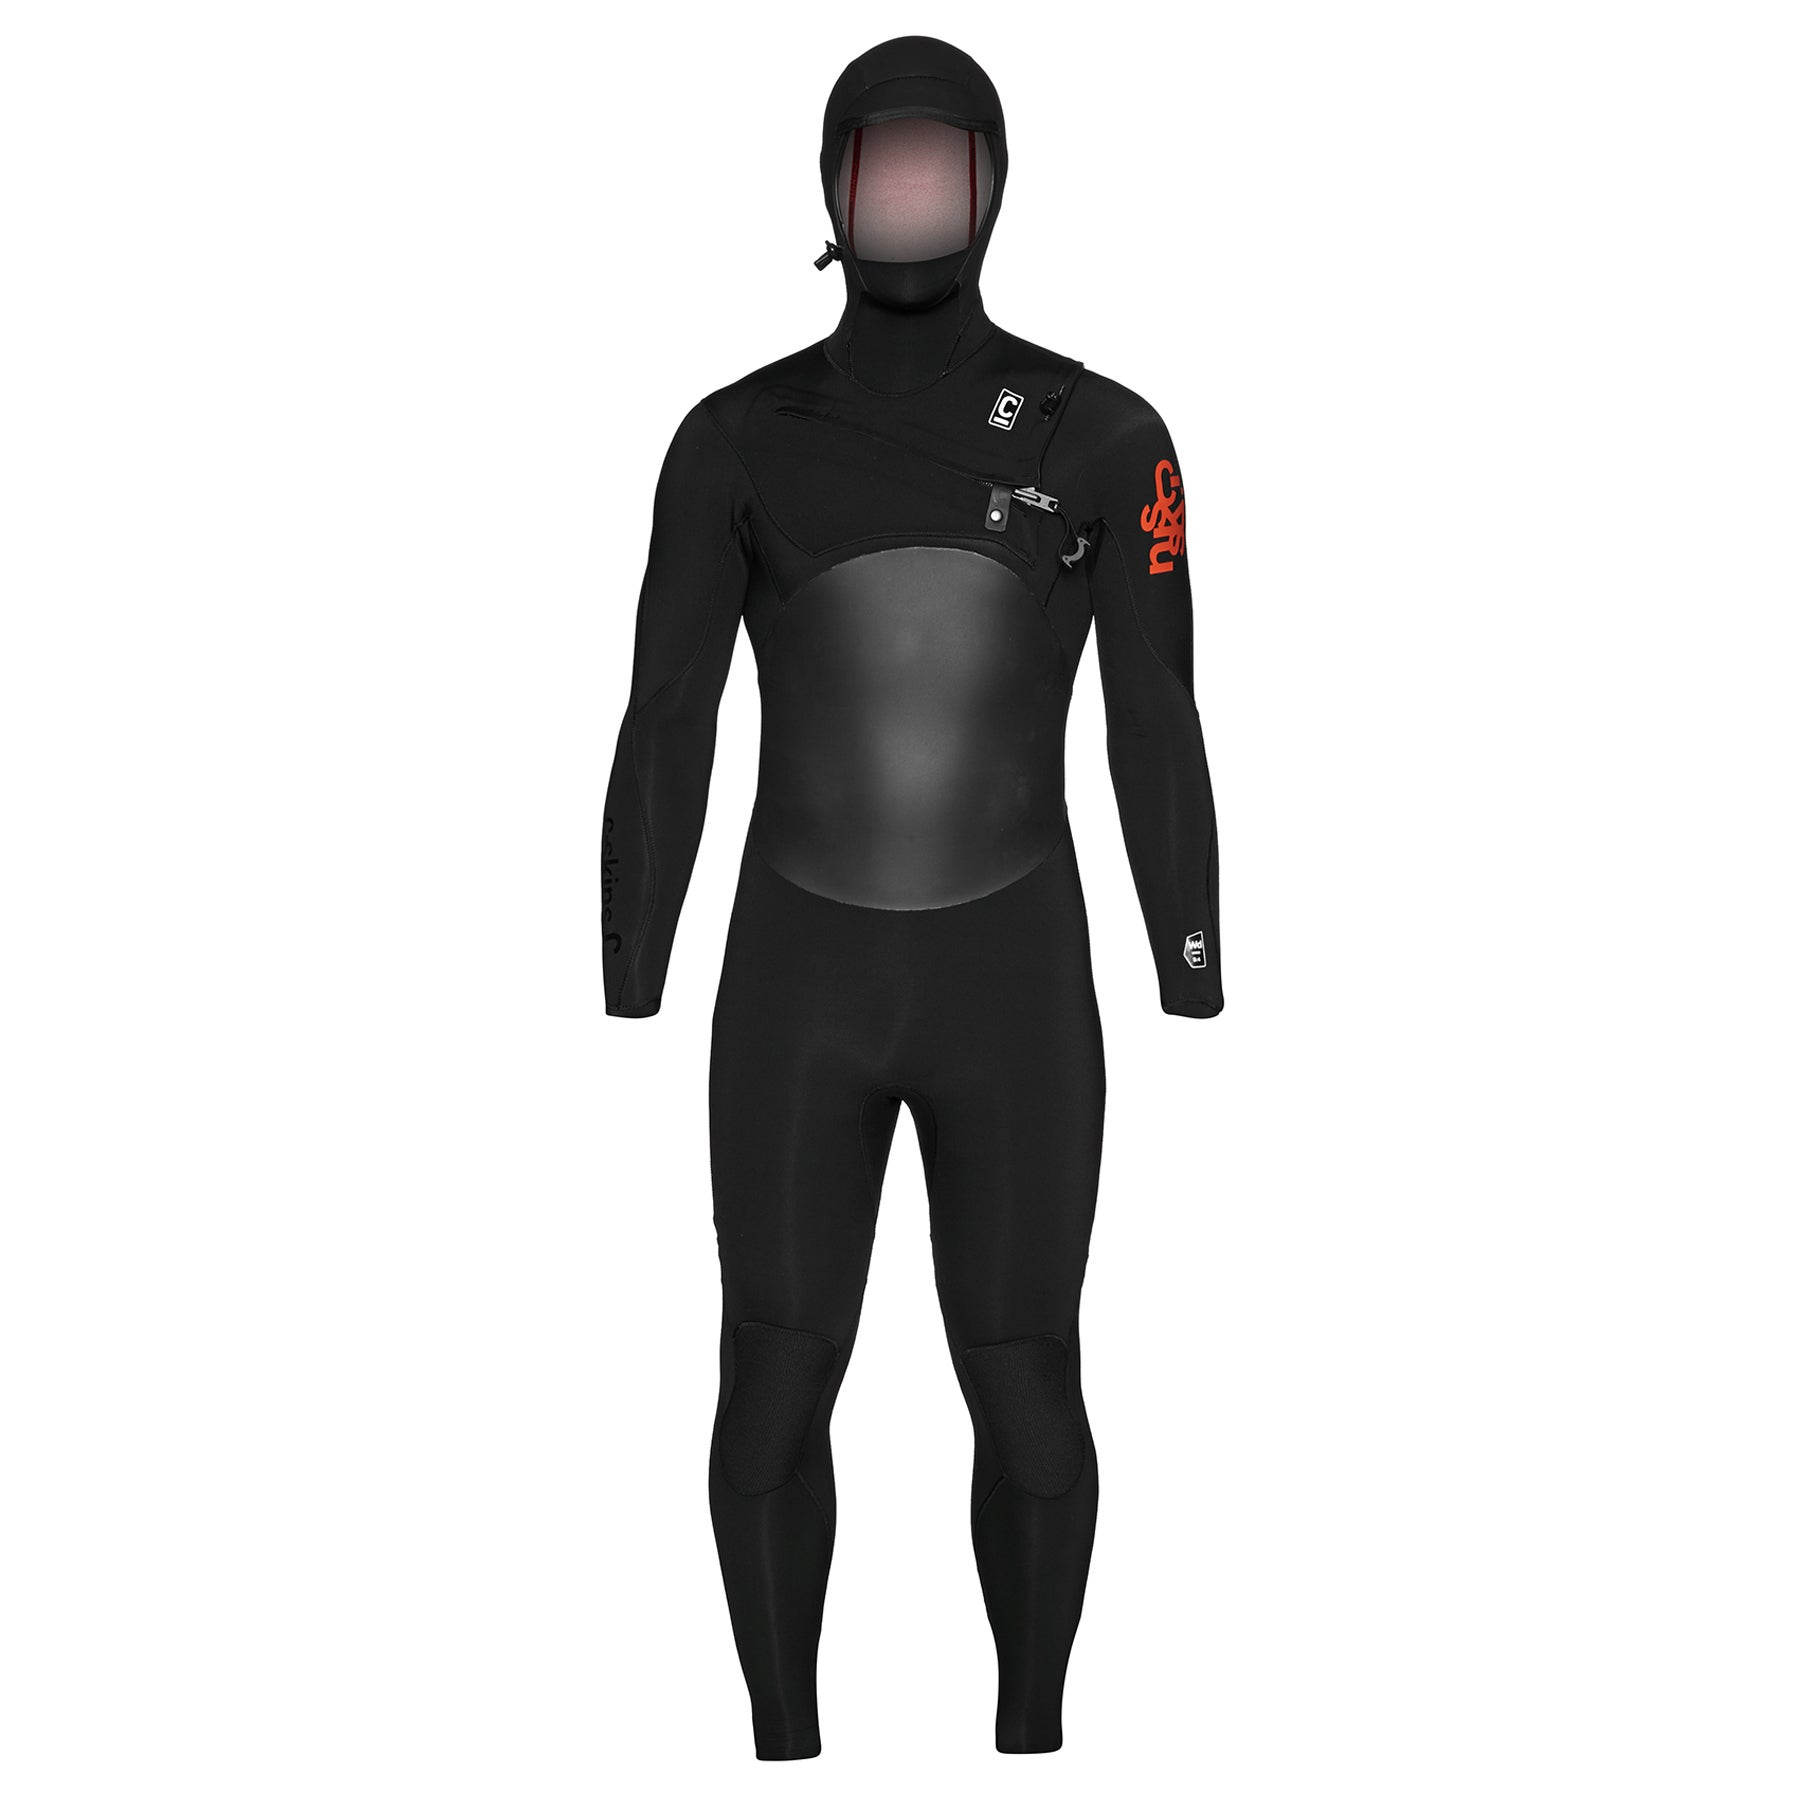 C-Skins Wired 5/4mm 2019 Chest Zip Hooded Wetsuit